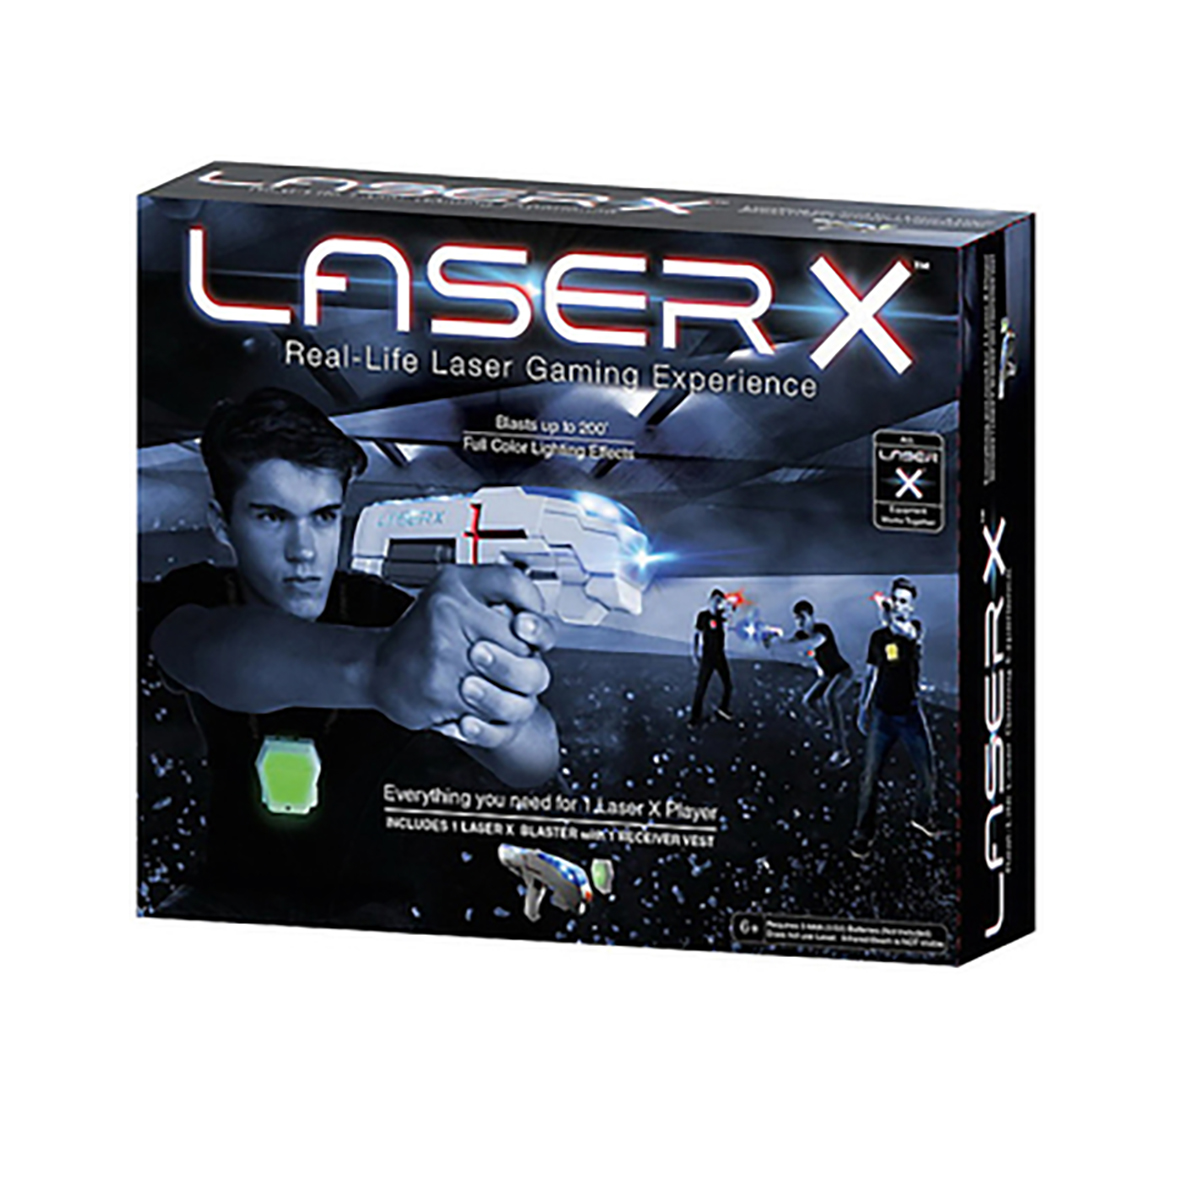 LASER X Toy Guns 8335486 for boys Arms Baby boy Kids Games Toys Outdoor Fun & Sports бим и шаги 1 немецкий язык 5 кл 2тт р т